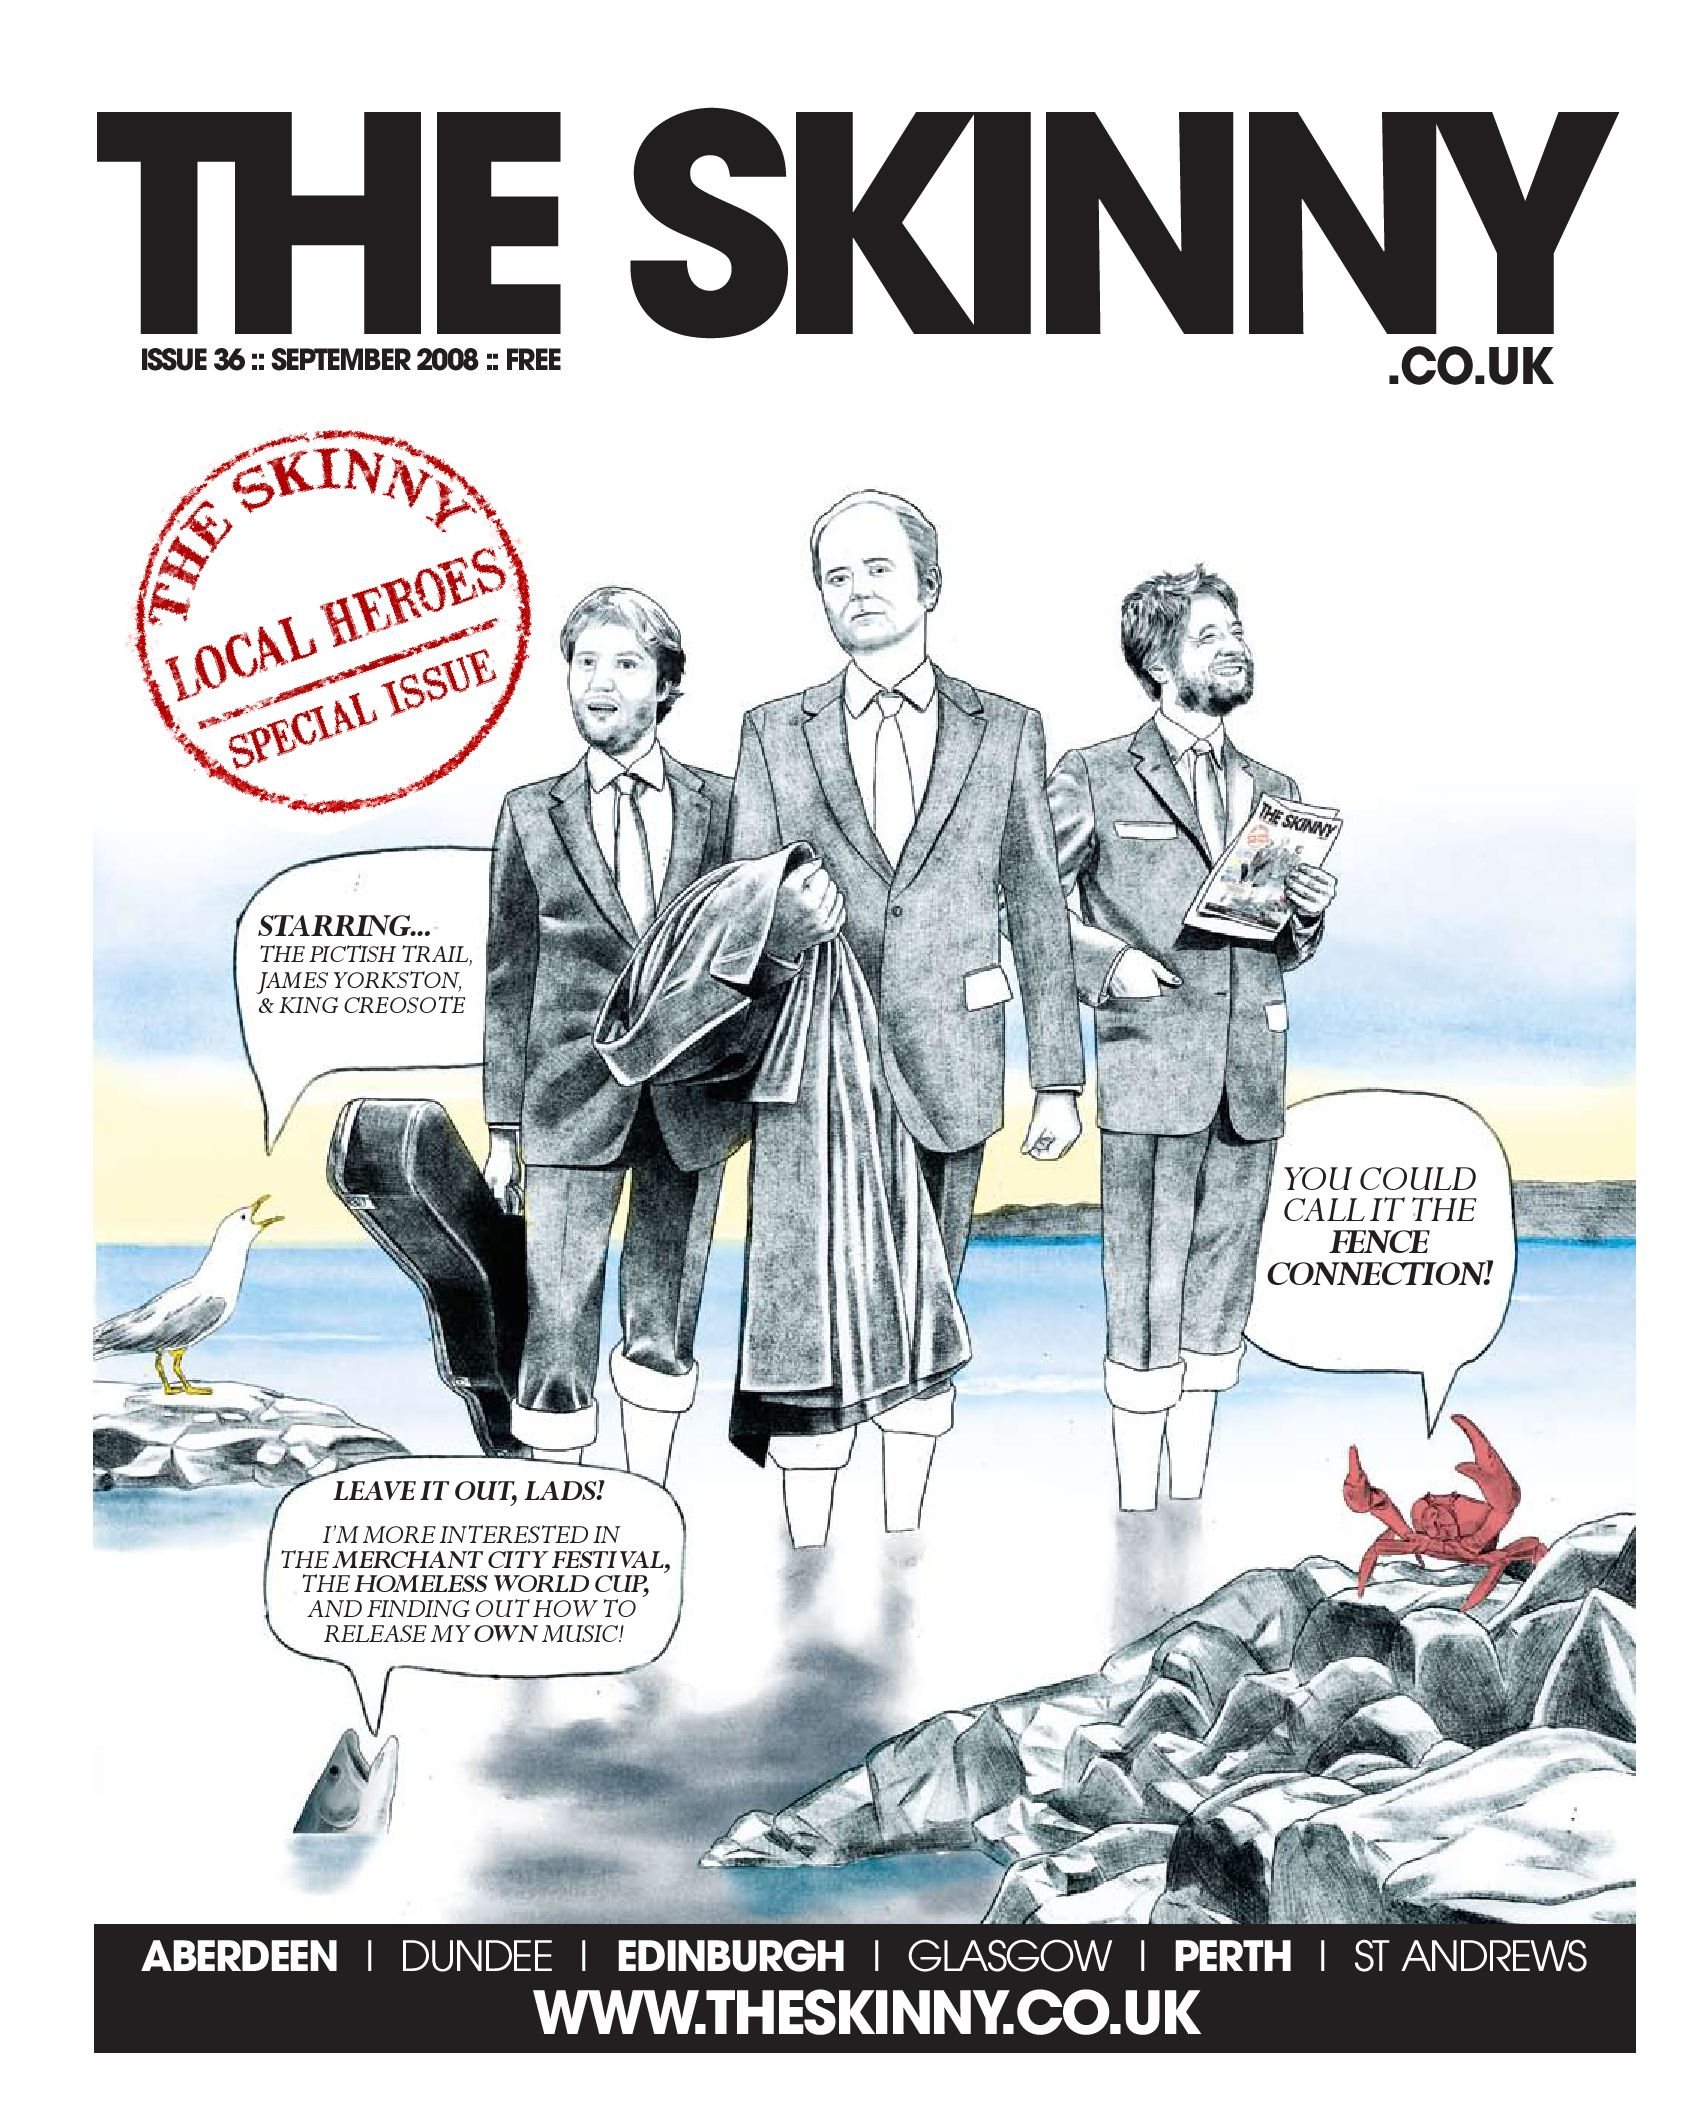 dd59a71aced623 The Skinny September  08 by The Skinny - issuu